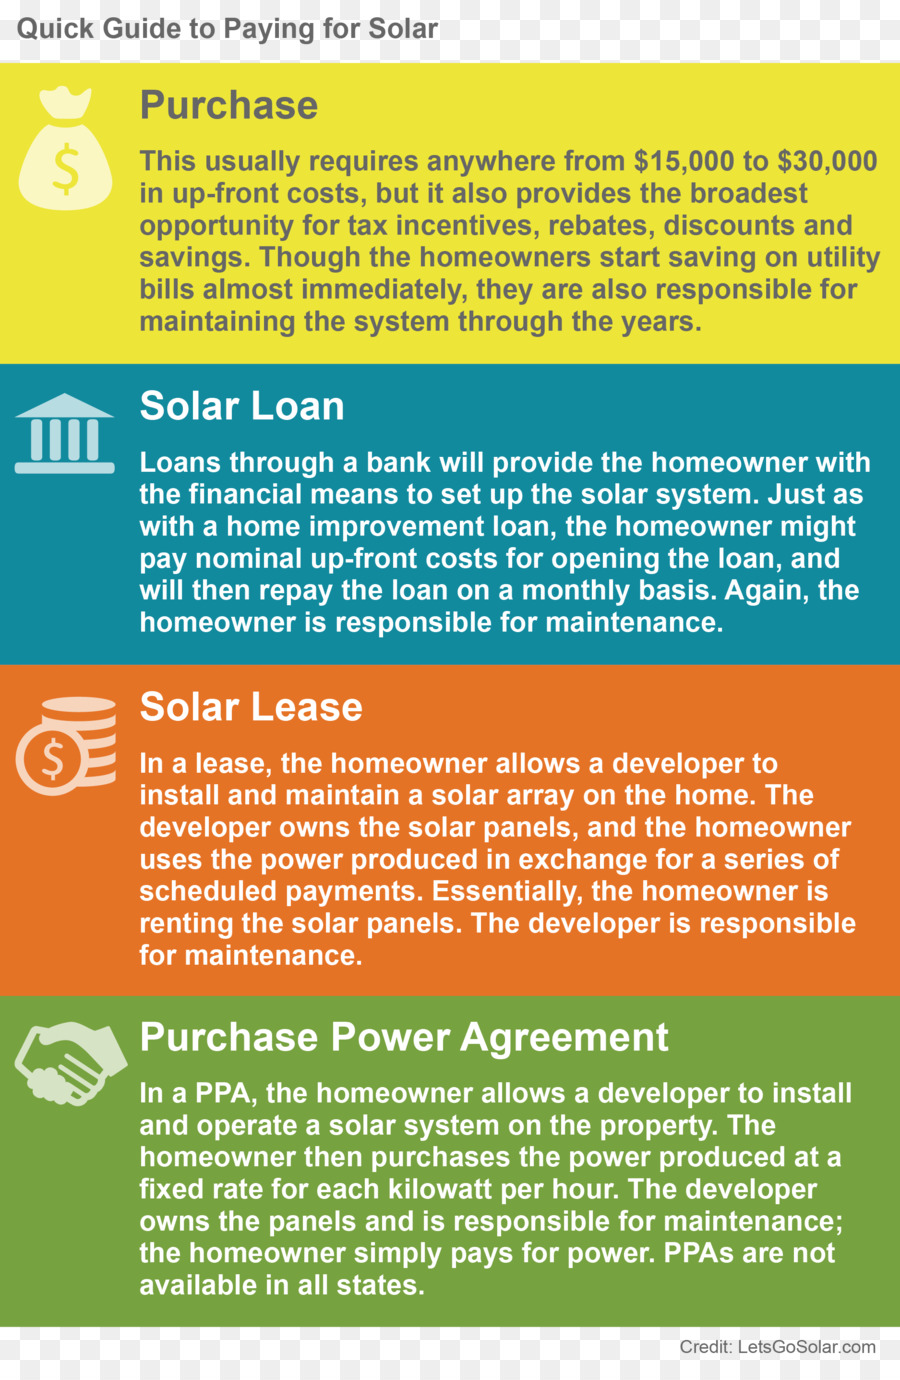 Purchase Agreement Solar Finance Tax Credit Home Png 1875 2867 Free Transpa